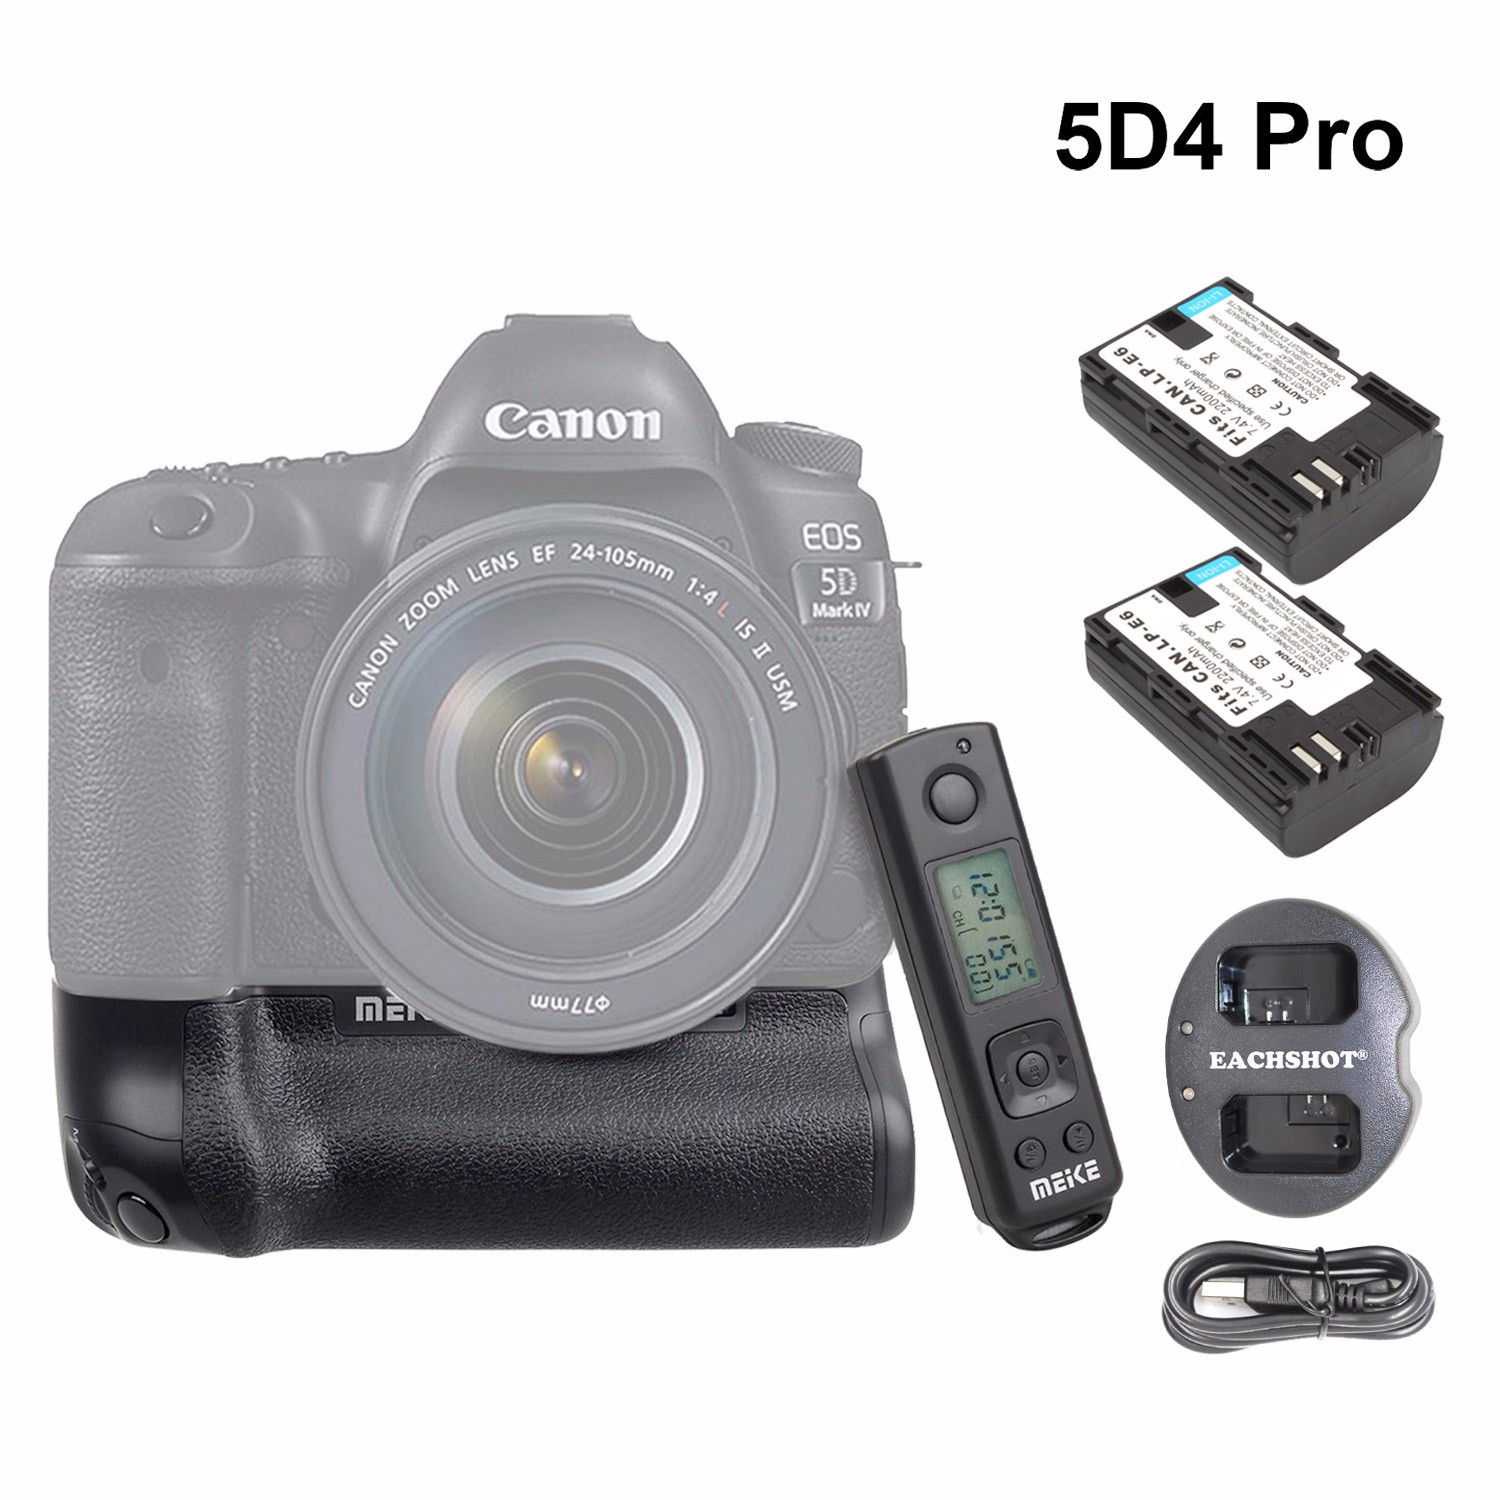 Meike MK-5D4 PRO Battery <font><b>Grip</b></font> With 2.4G Wireless Remote for Canon <font><b>5D</b></font> <font><b>Mark</b></font> <font><b>IV</b></font> Camera as Canon BG-E20 w/ LP-E6 Battery & Charger image